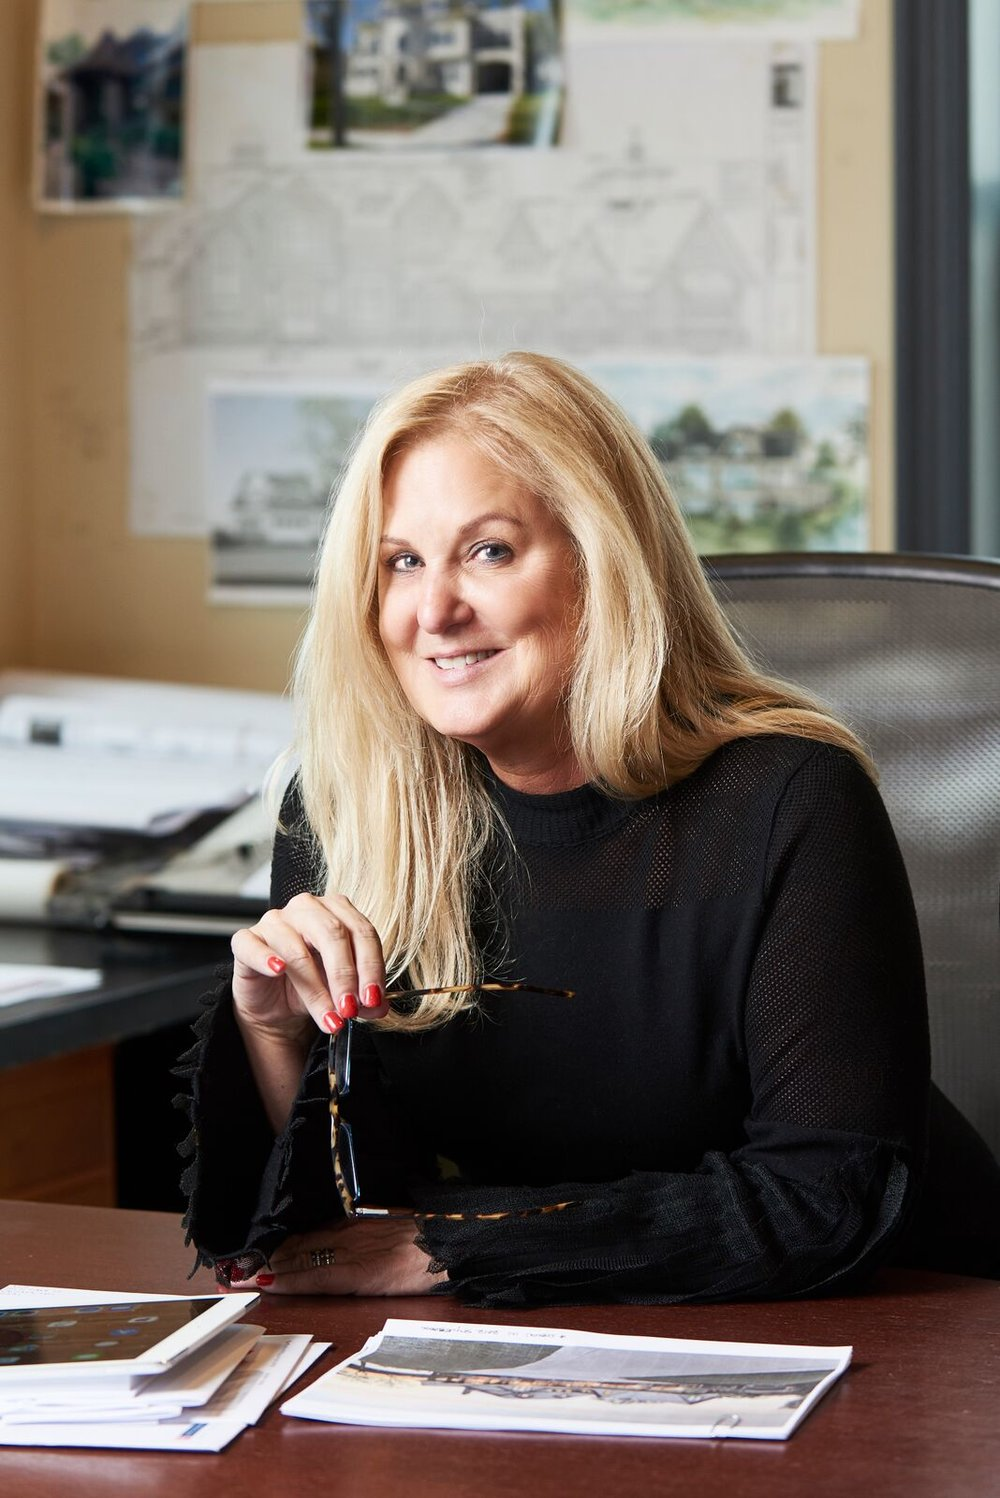 Kathy Alexander- President & Owner   With over 30 years of residential design experience, Kathy has become one of the prominent home designers in Minnesota. Her unparalleled knowledge, experience, and attention to detail are what allow her to turn your dream homes into reality. When she's not designing homes, Kathy loves to travel and spend time with her family.